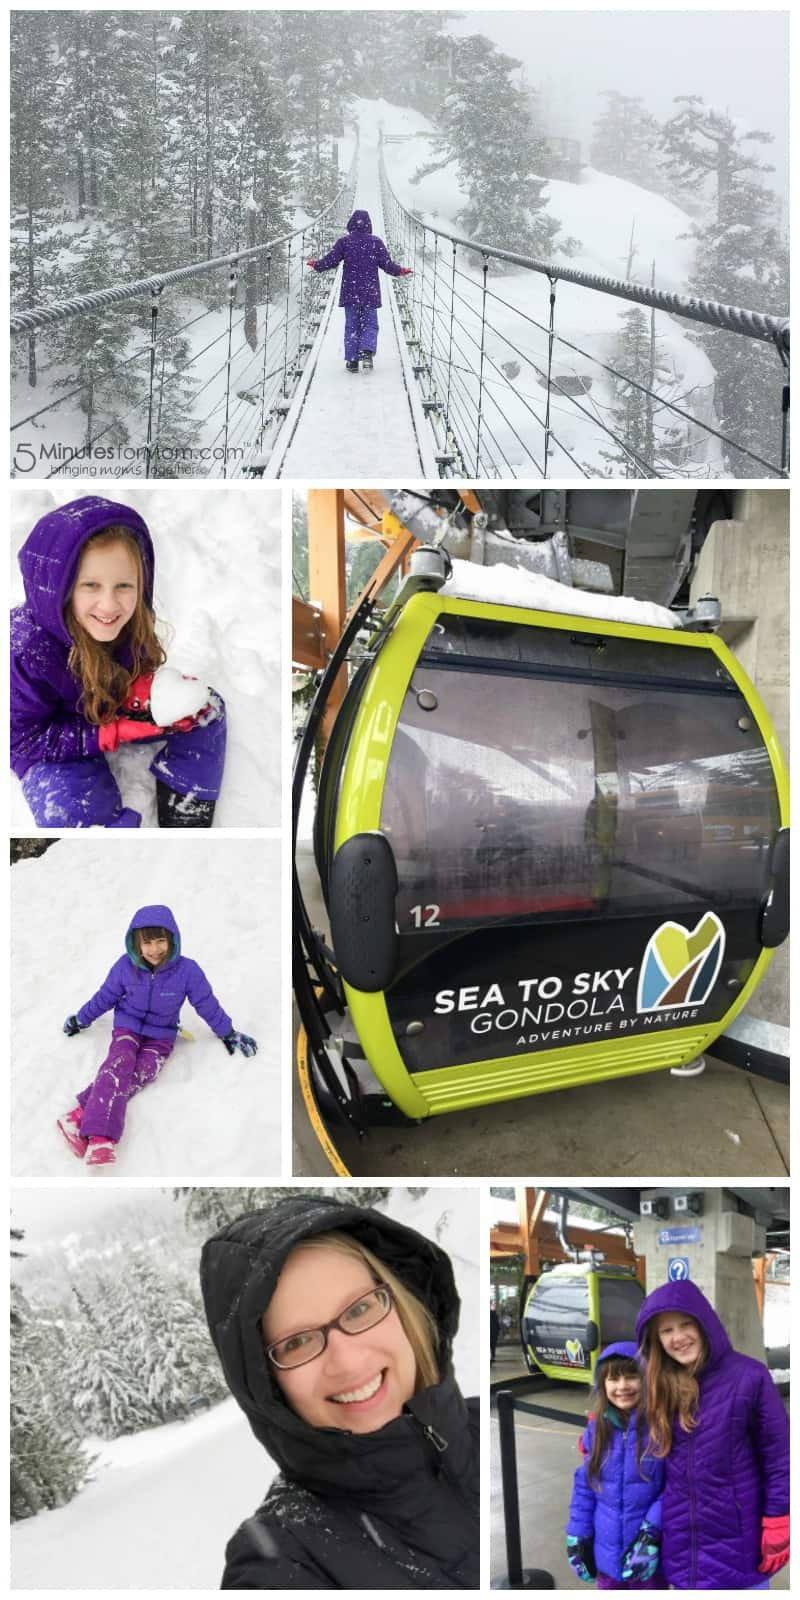 playing-in-the-snow-at-the-top-of-the-sea-to-sky-gondola